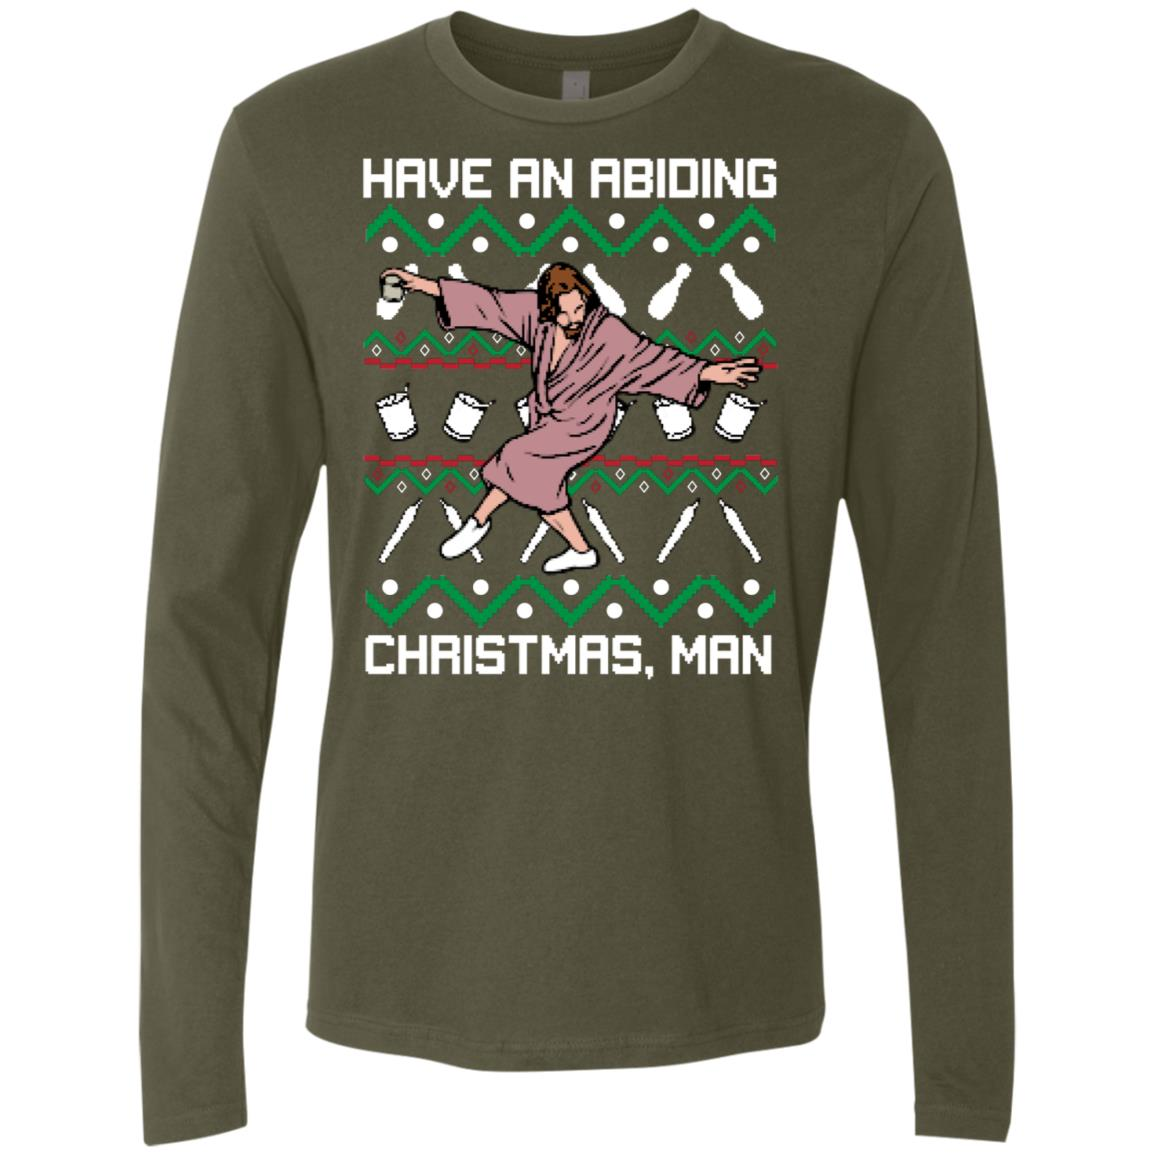 Abiding Christmas Premium Long Sleeve